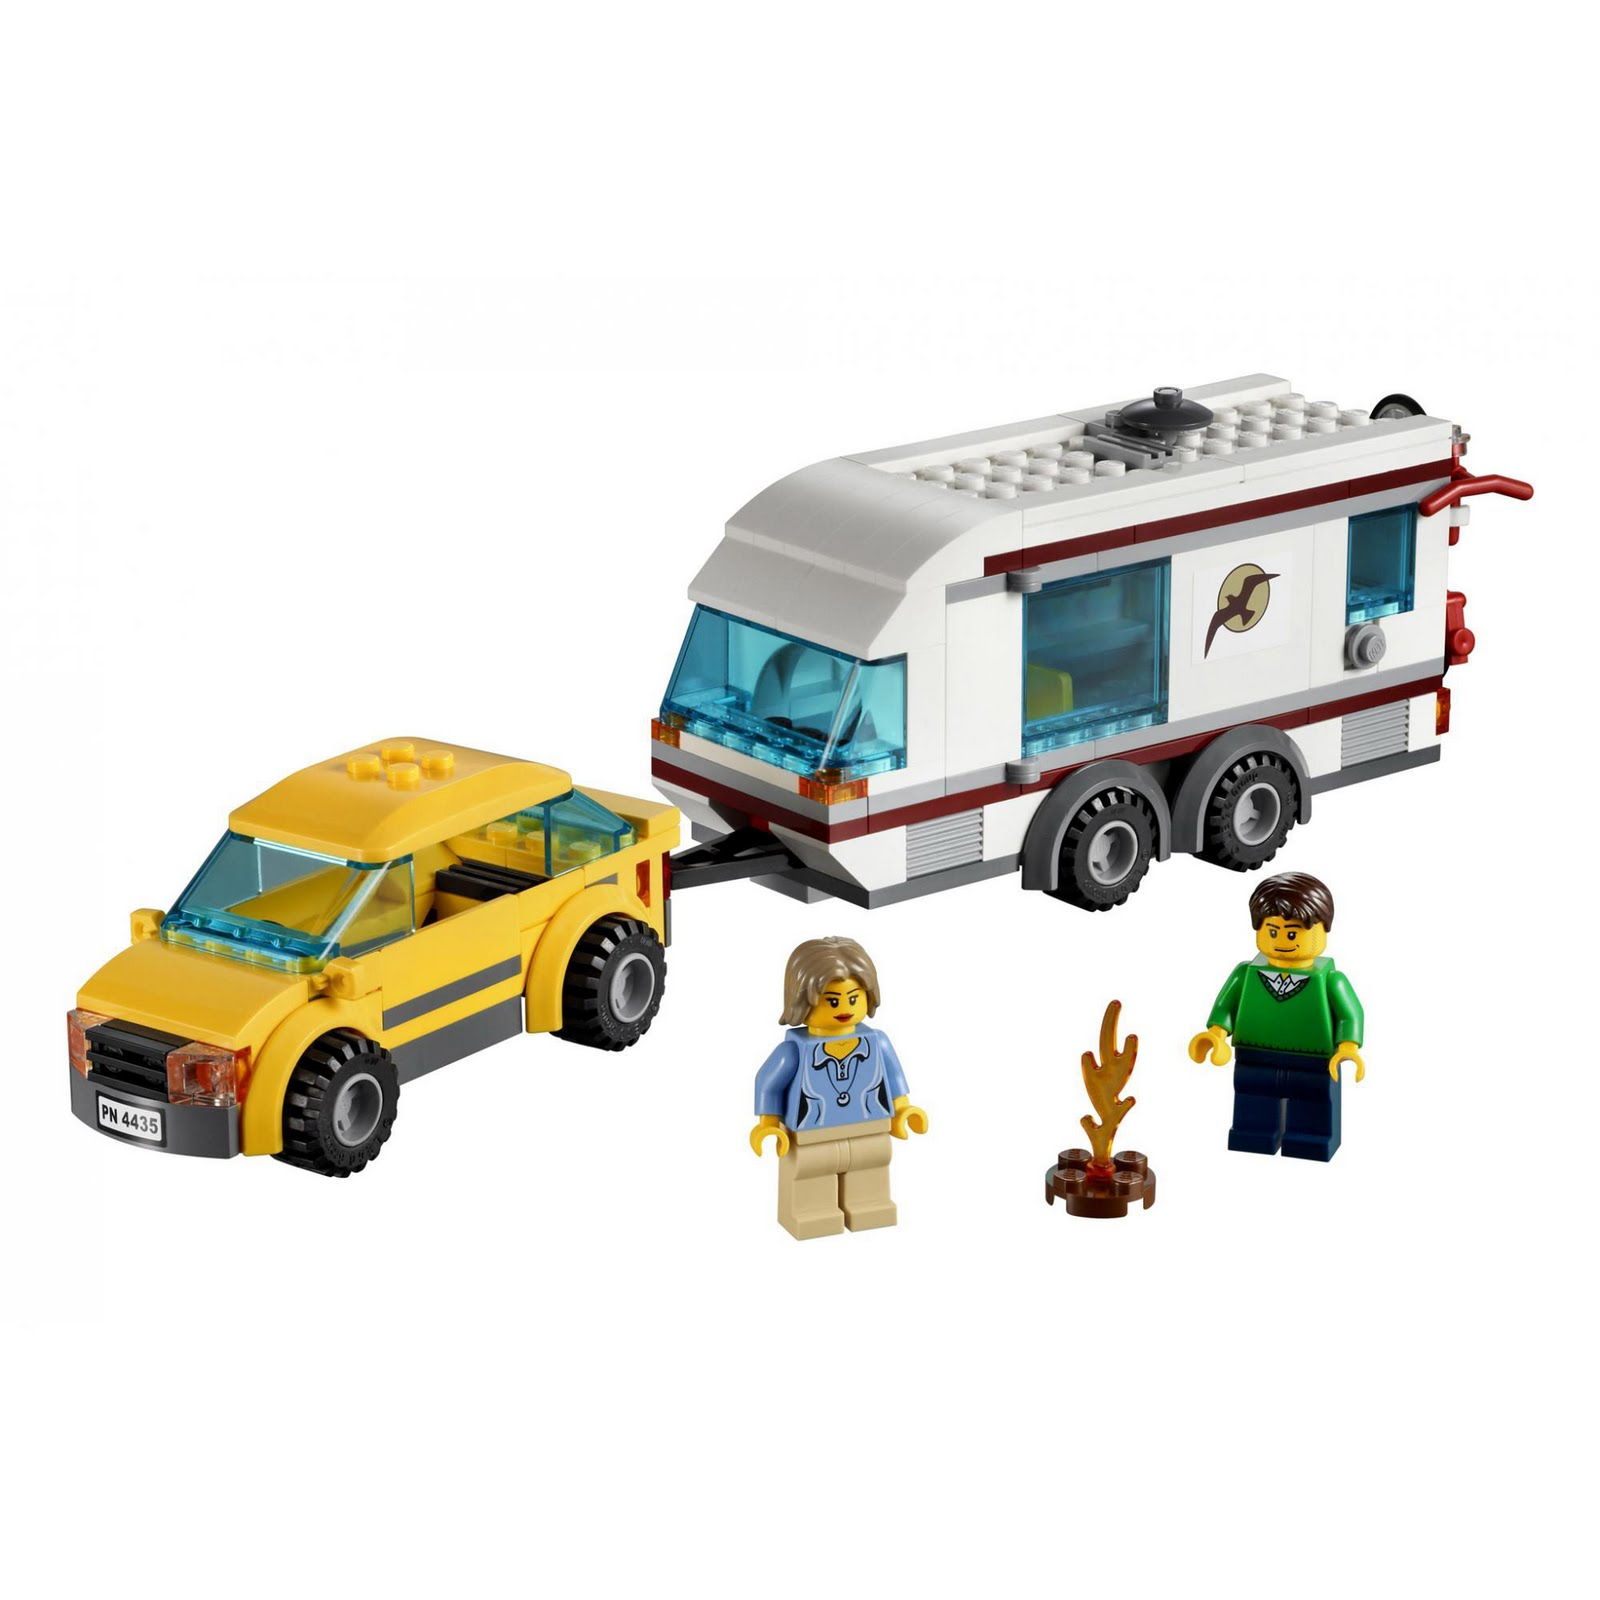 set database lego 4435 car and camper. Black Bedroom Furniture Sets. Home Design Ideas